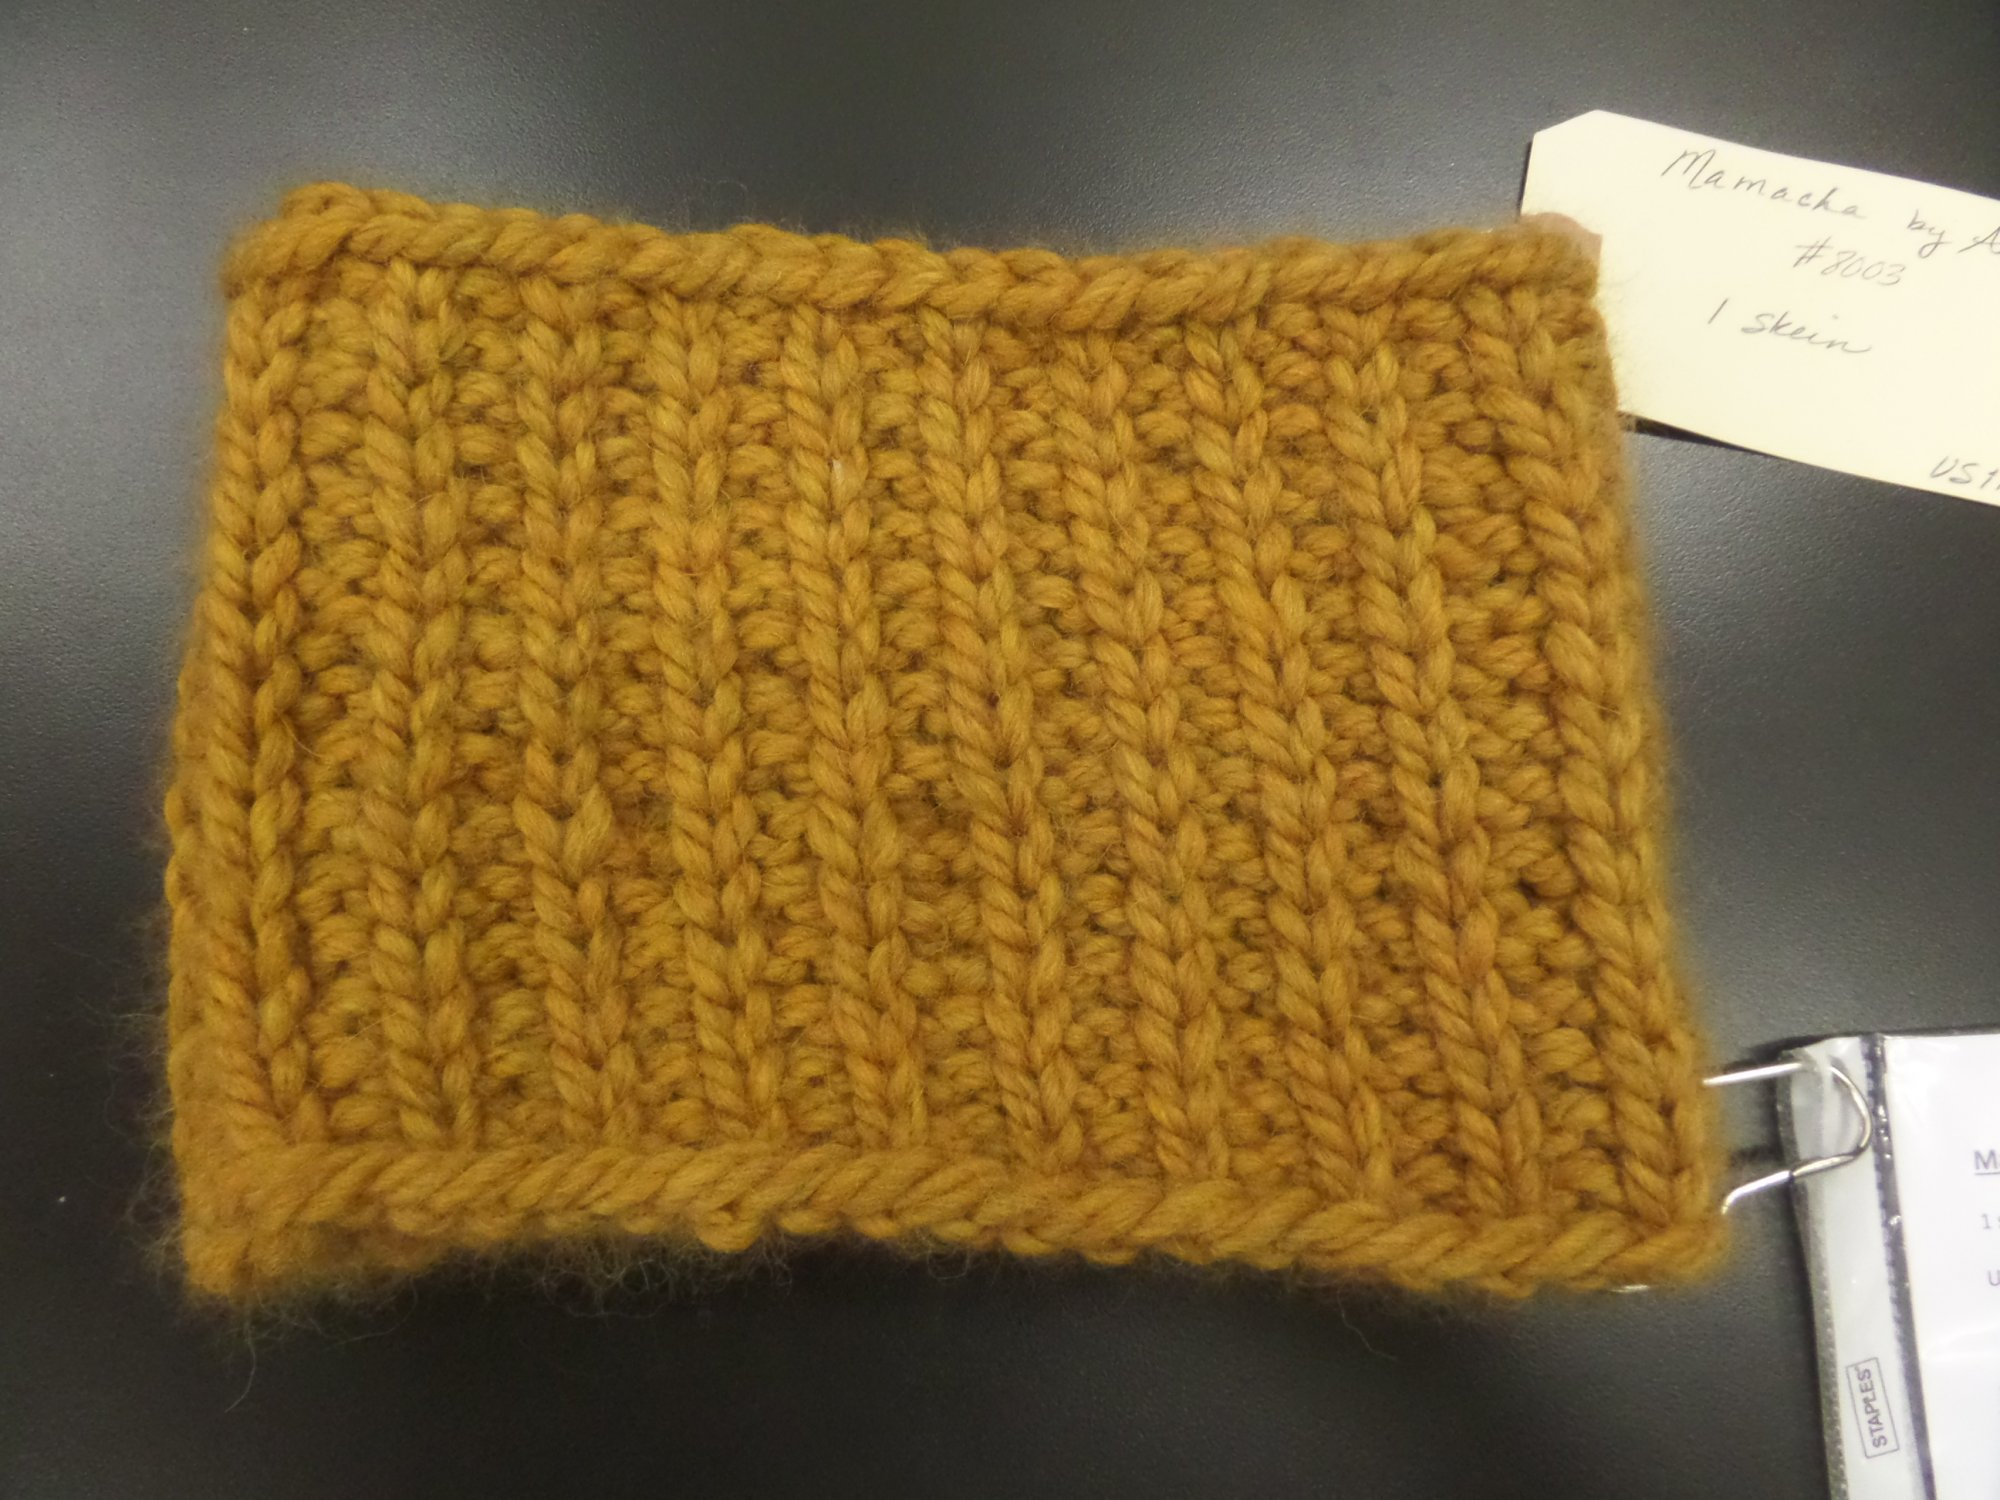 Katherine's Cowl model in Mamacha yarn from Amano